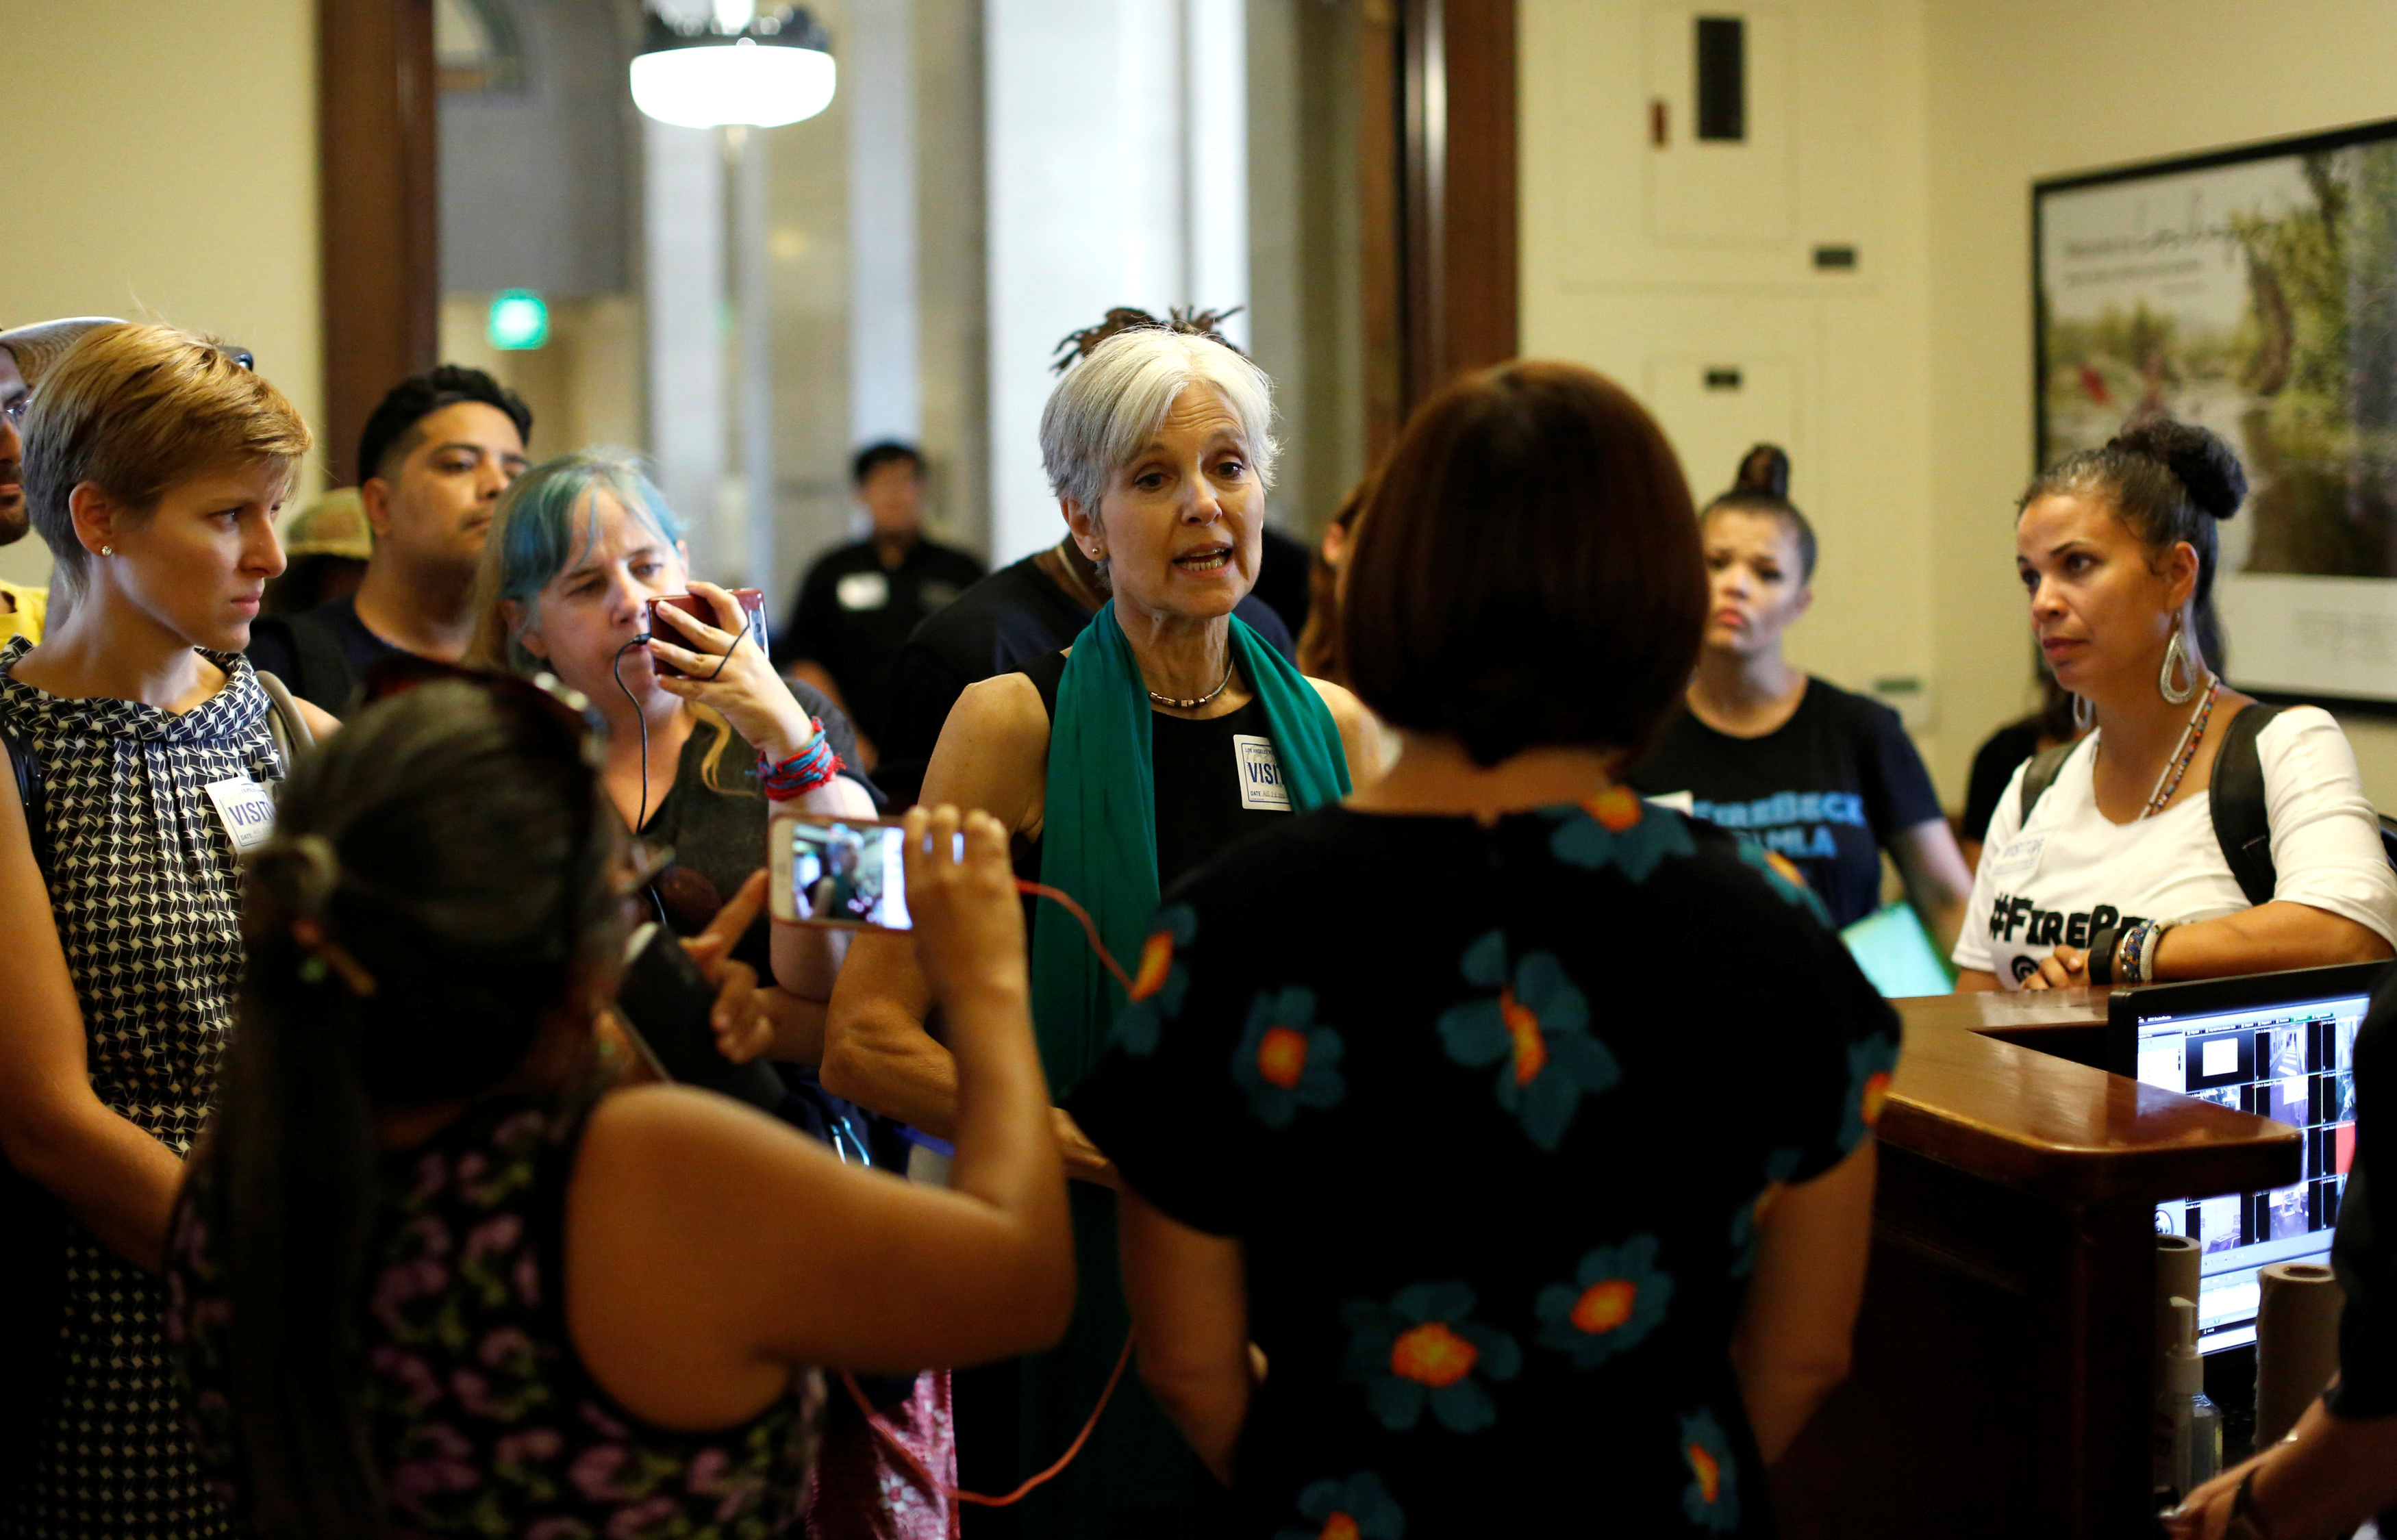 Green Party presidential candidate Stein and activists from Black Lives Matter speak with an employee as they attempt to meet with the mayor at City Hall in Los Angeles